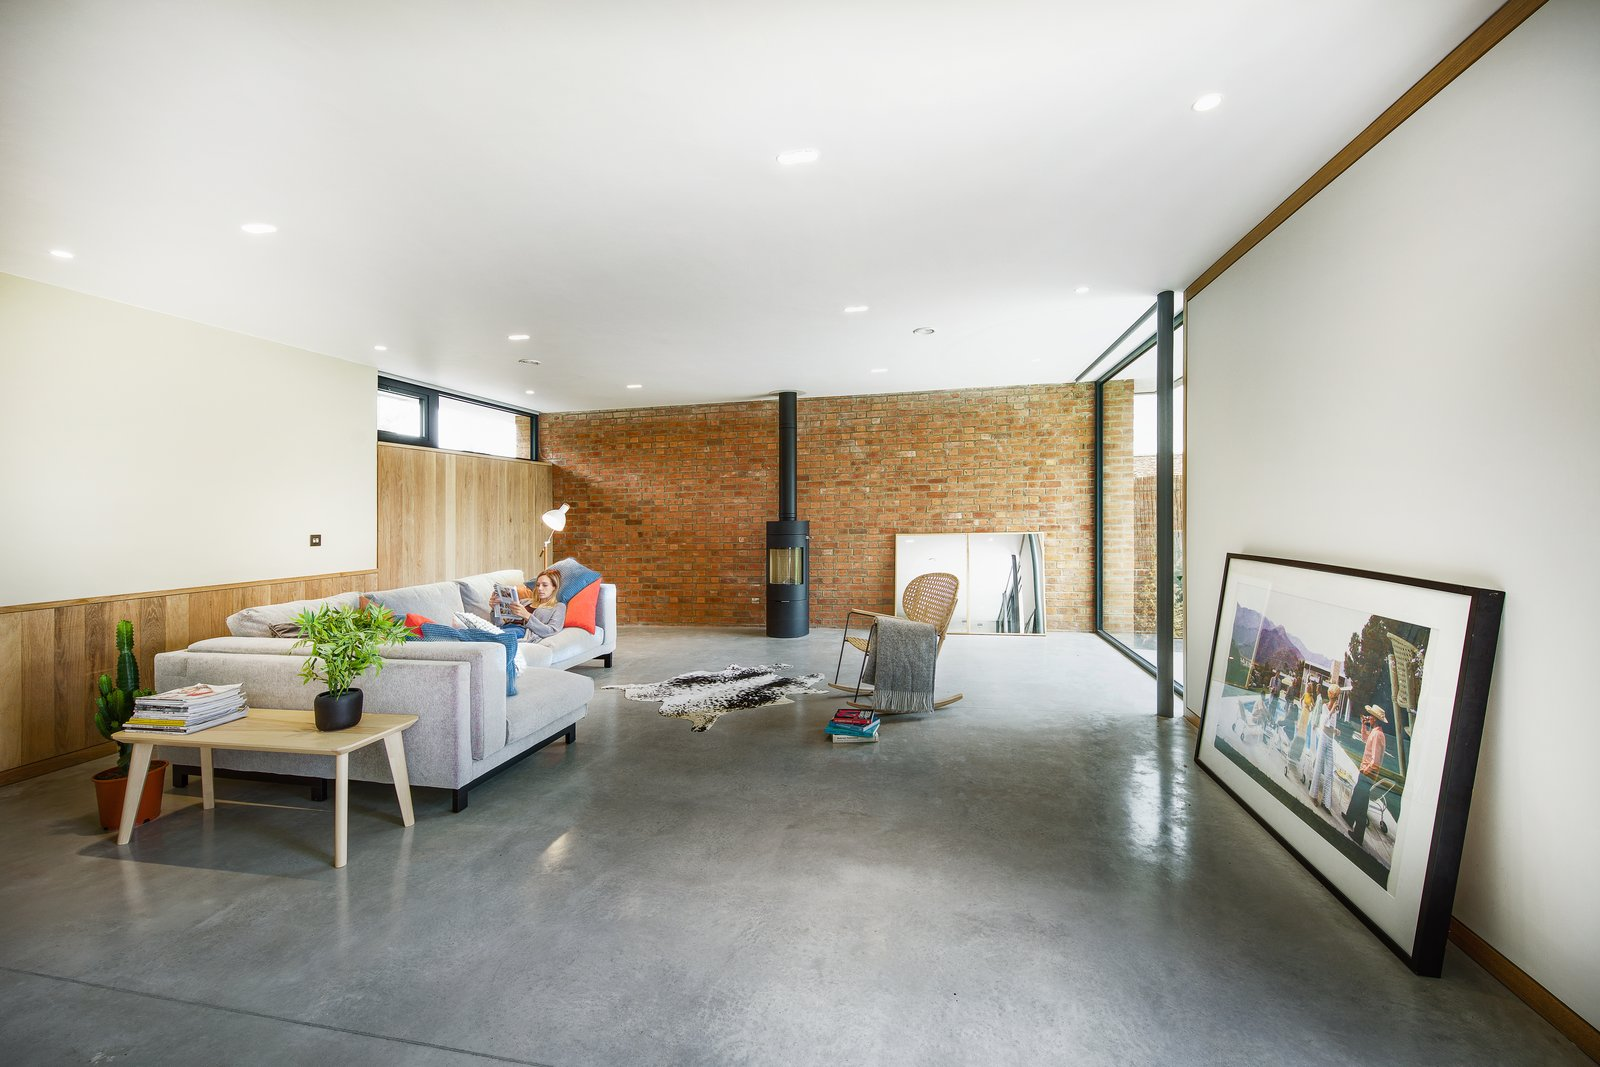 Living Room, End Tables, Sofa, Recessed Lighting, Concrete Floor, Floor Lighting, and Console Tables A solid brick enclosure has been used for the external north-facing wall.     Photo 6 of 17 in A 17th-Century Conservation Area in England Greets a Modern Home